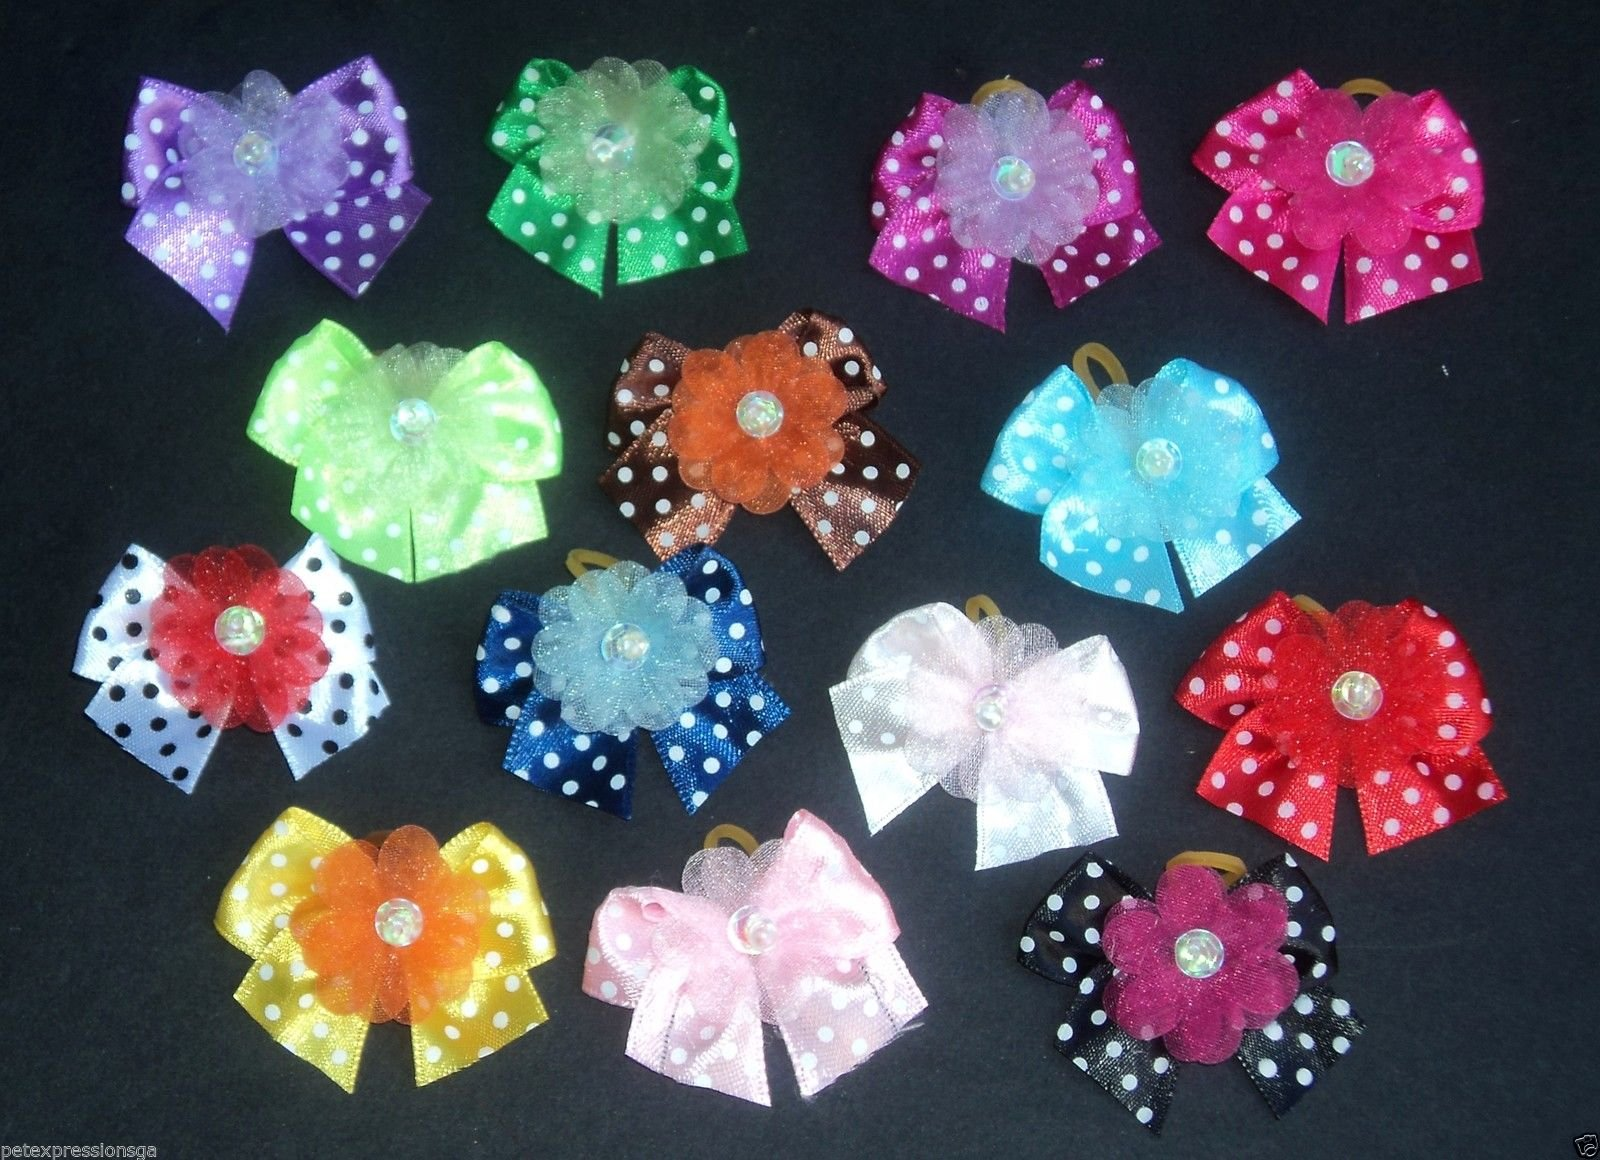 JJ Couture Lot 100 Dog Grooming Hair Bows Easter/Spring/Summer Collection-Polka-Dot Variety Colors - Super Value Pack for Groomers or PET Shops!!! by JJ Couture